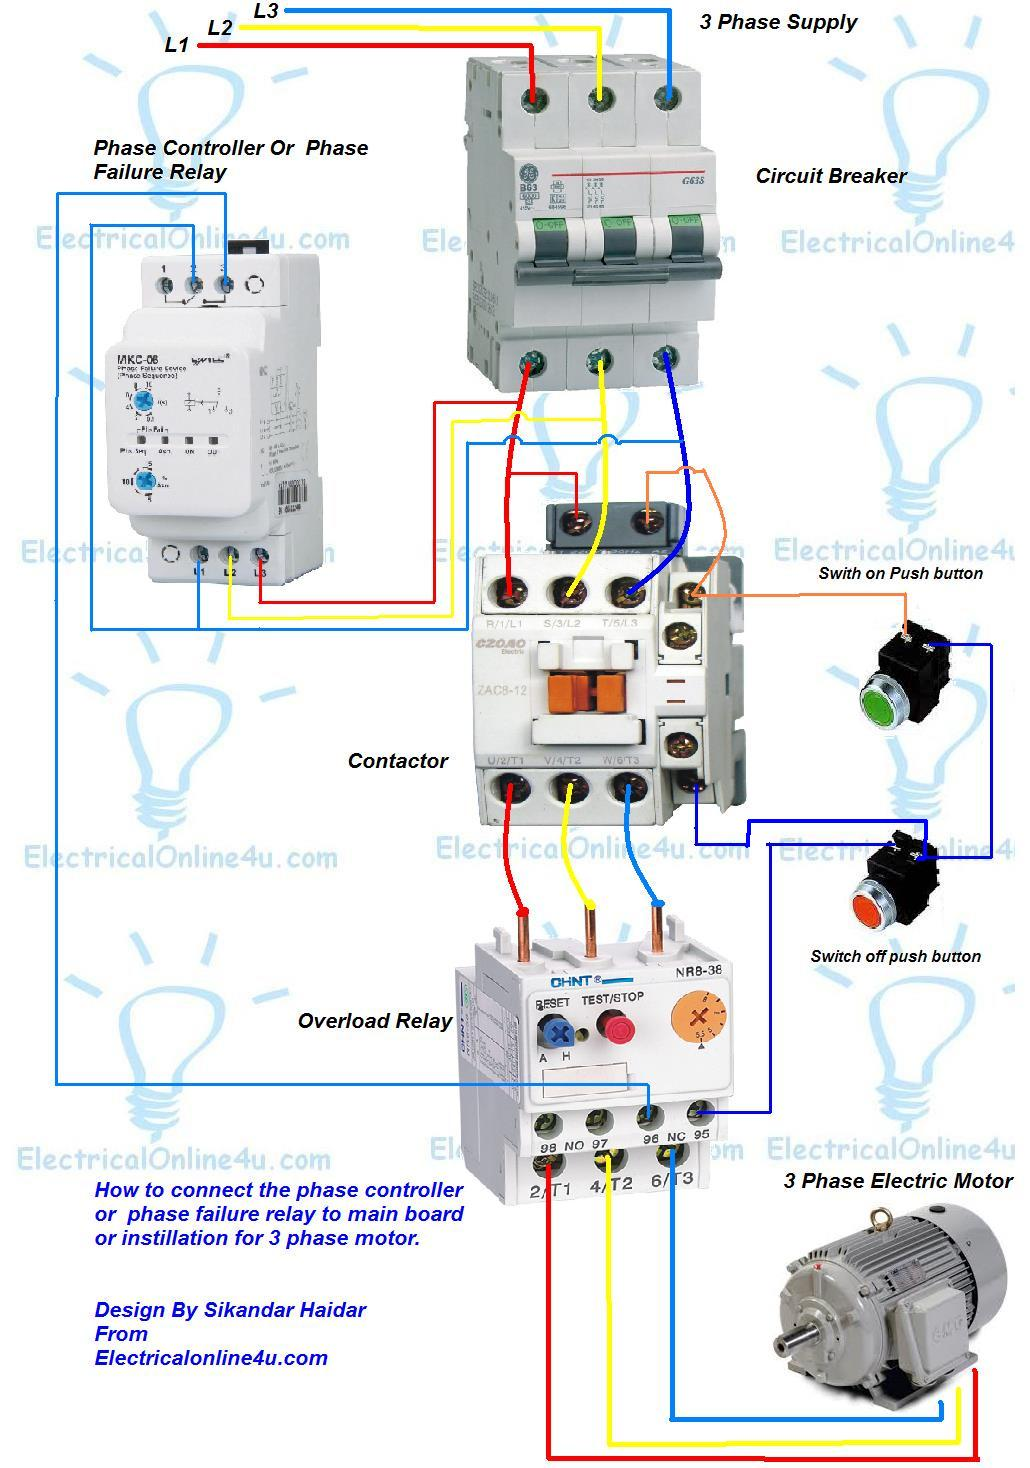 Phase%2Bfailure%2Brelay%2B %2Bphase%2Bcontroller%2Binstilaion%2Bin%2B3%2Bphase%2BMain%2Bboard%2Bor%2Bfor%2B3%2Bphase%2Bmotor phase controller wiring phase failure relay diagram electrical 3 phase electric motor wiring at gsmx.co